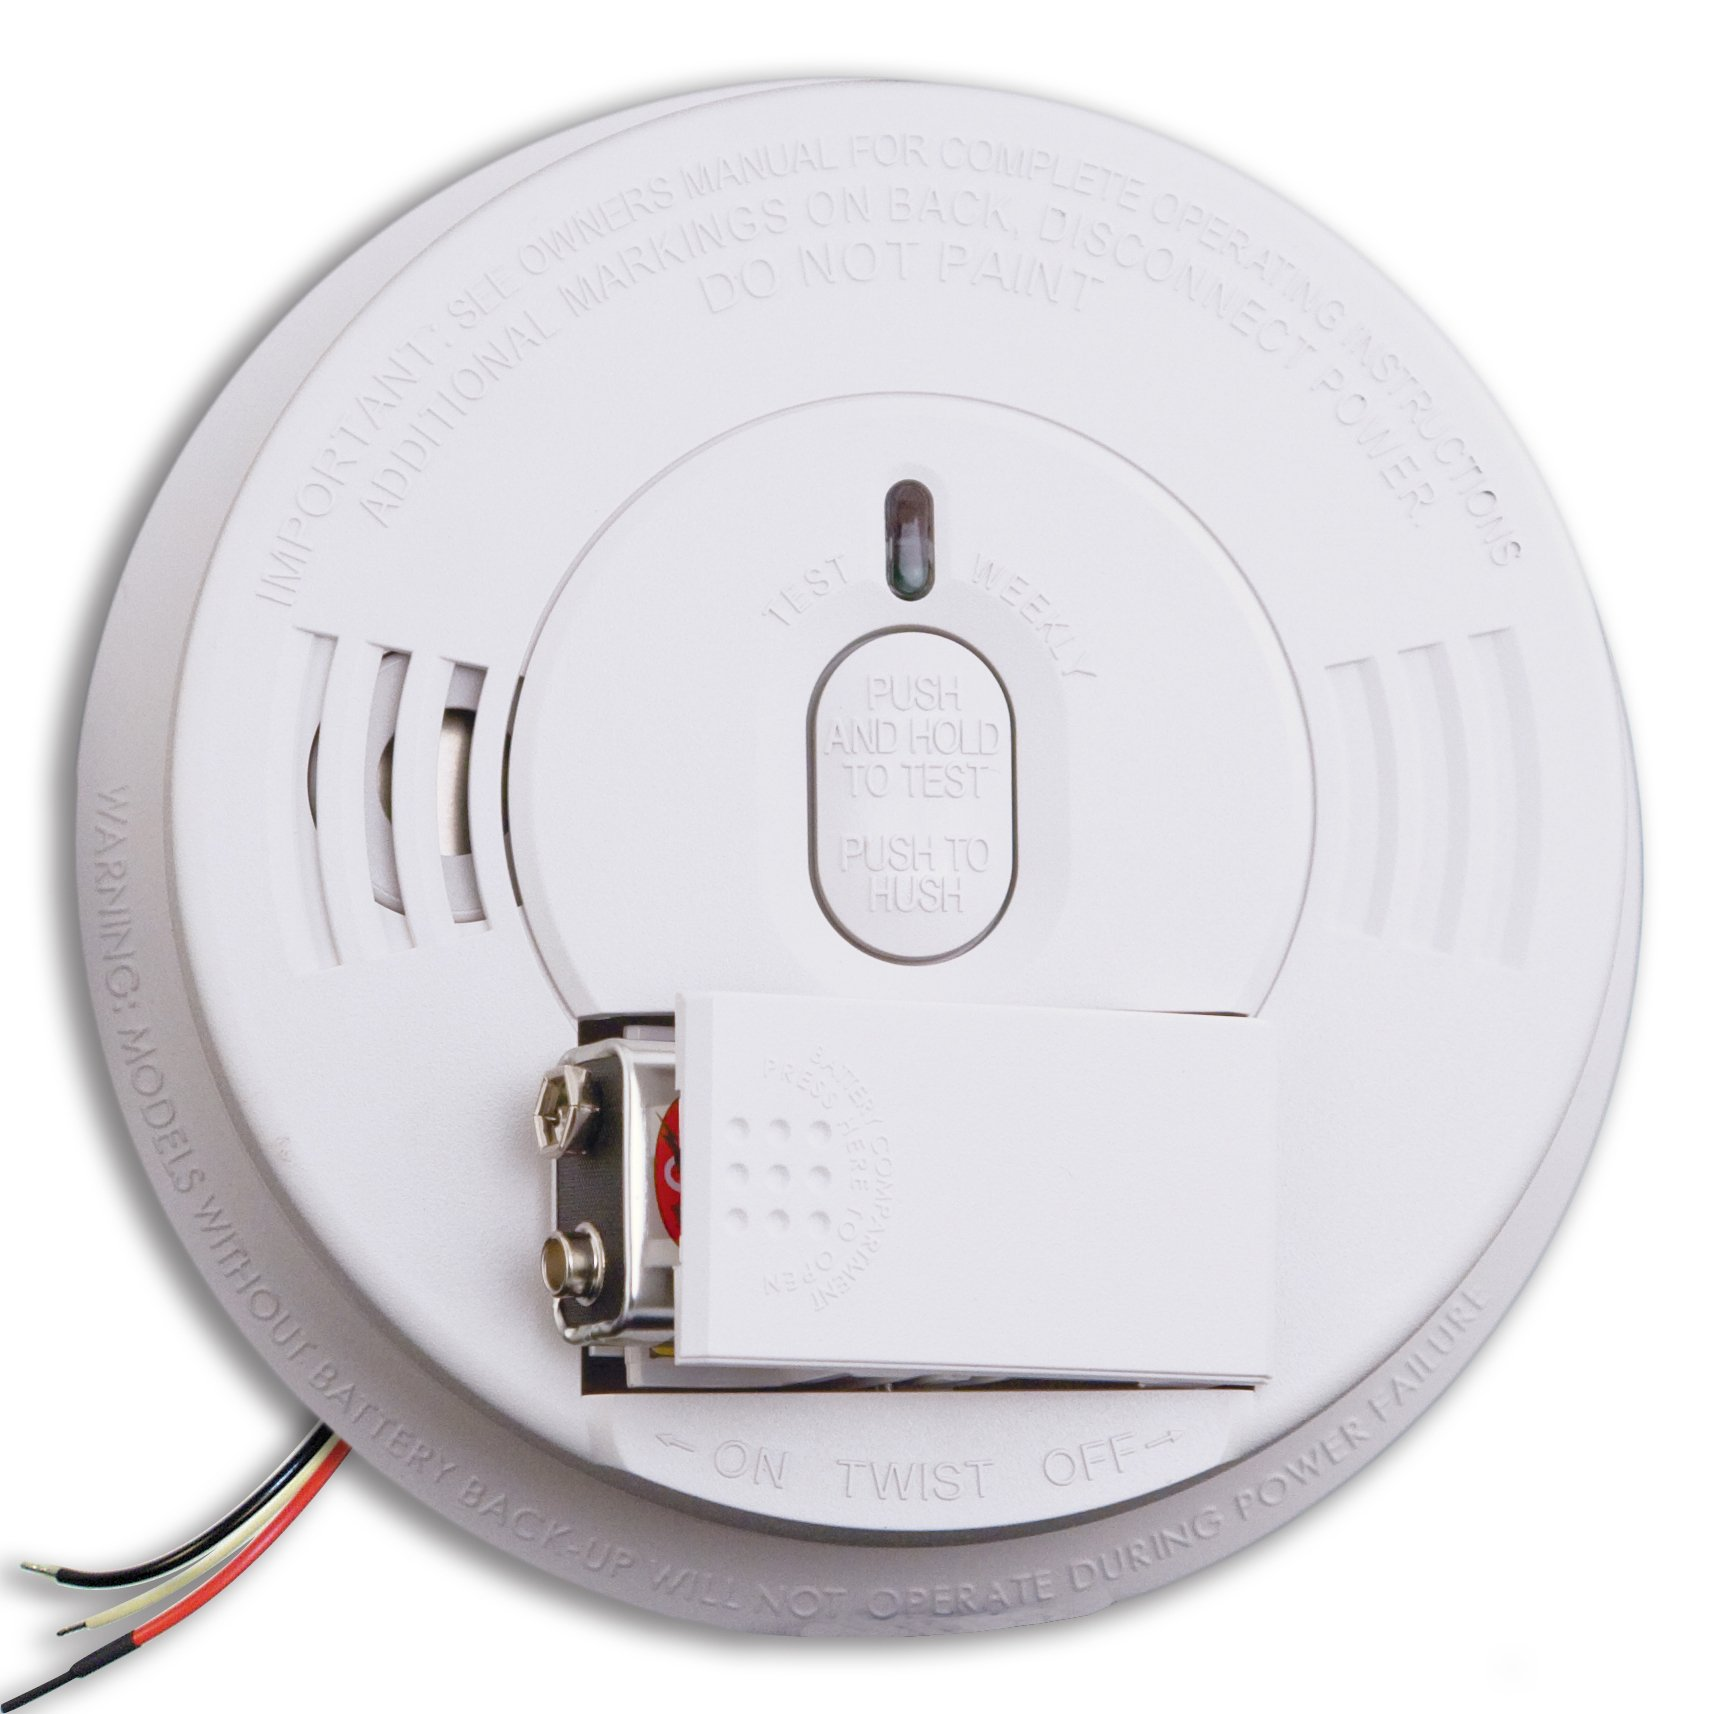 Kidde i12060 Hardwired Smoke Alarm with Front Load Battery Backup Smoke Alarm